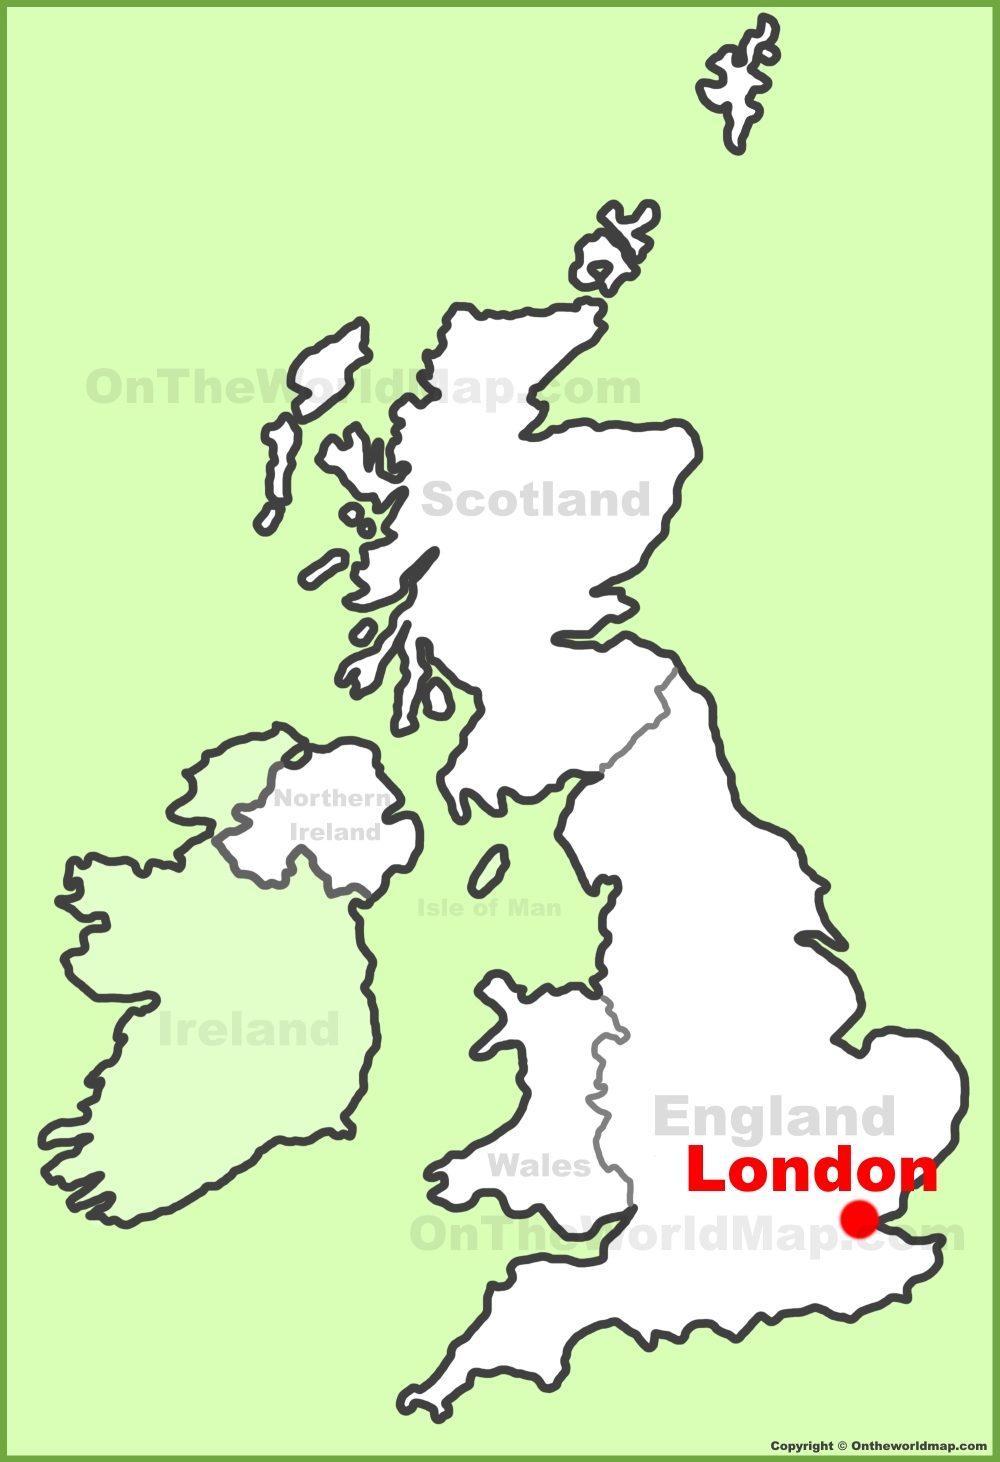 full size london location map